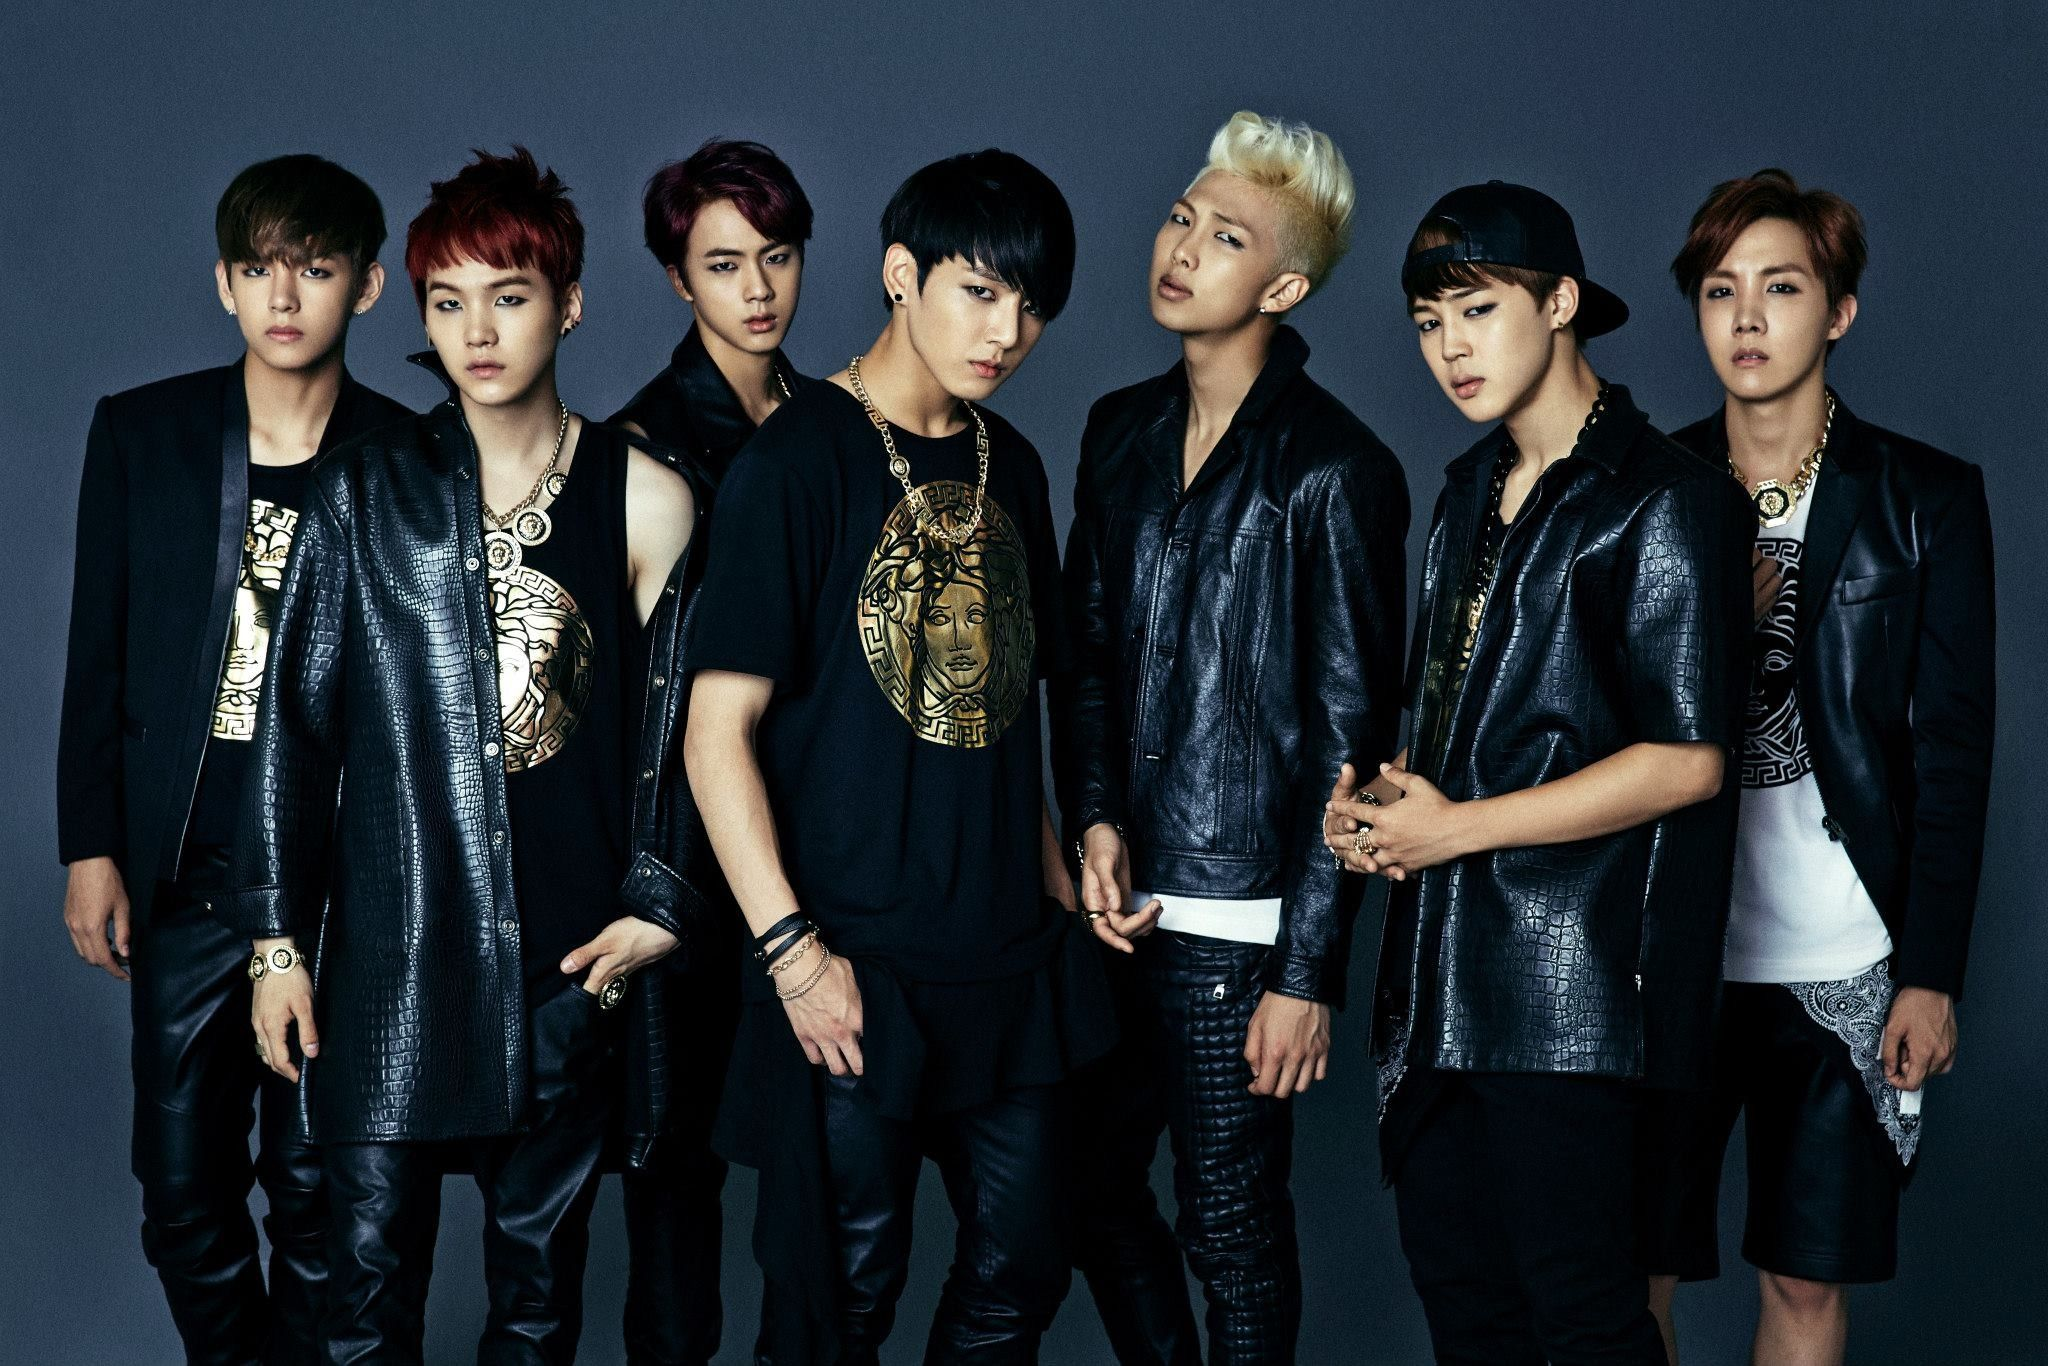 bts group picture, bts free download